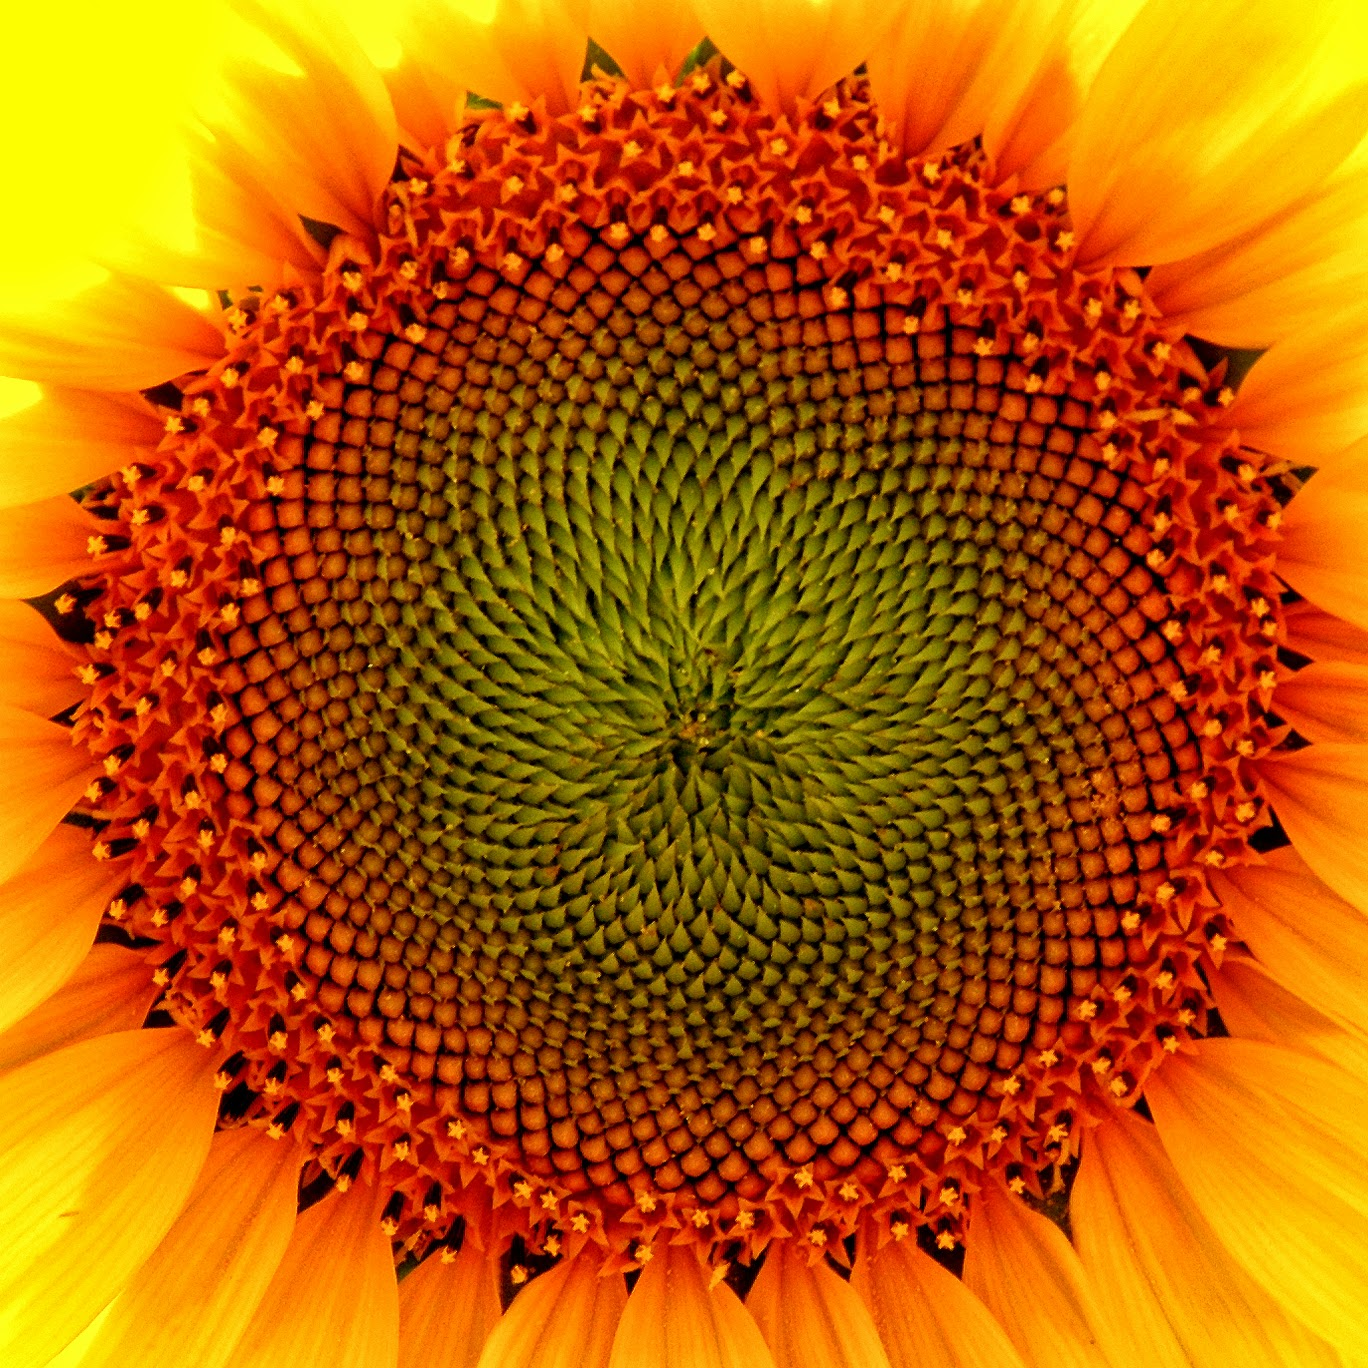 [Jeu] Association d'images - Page 5 61+sunflower-extreme-close-up-full-size1